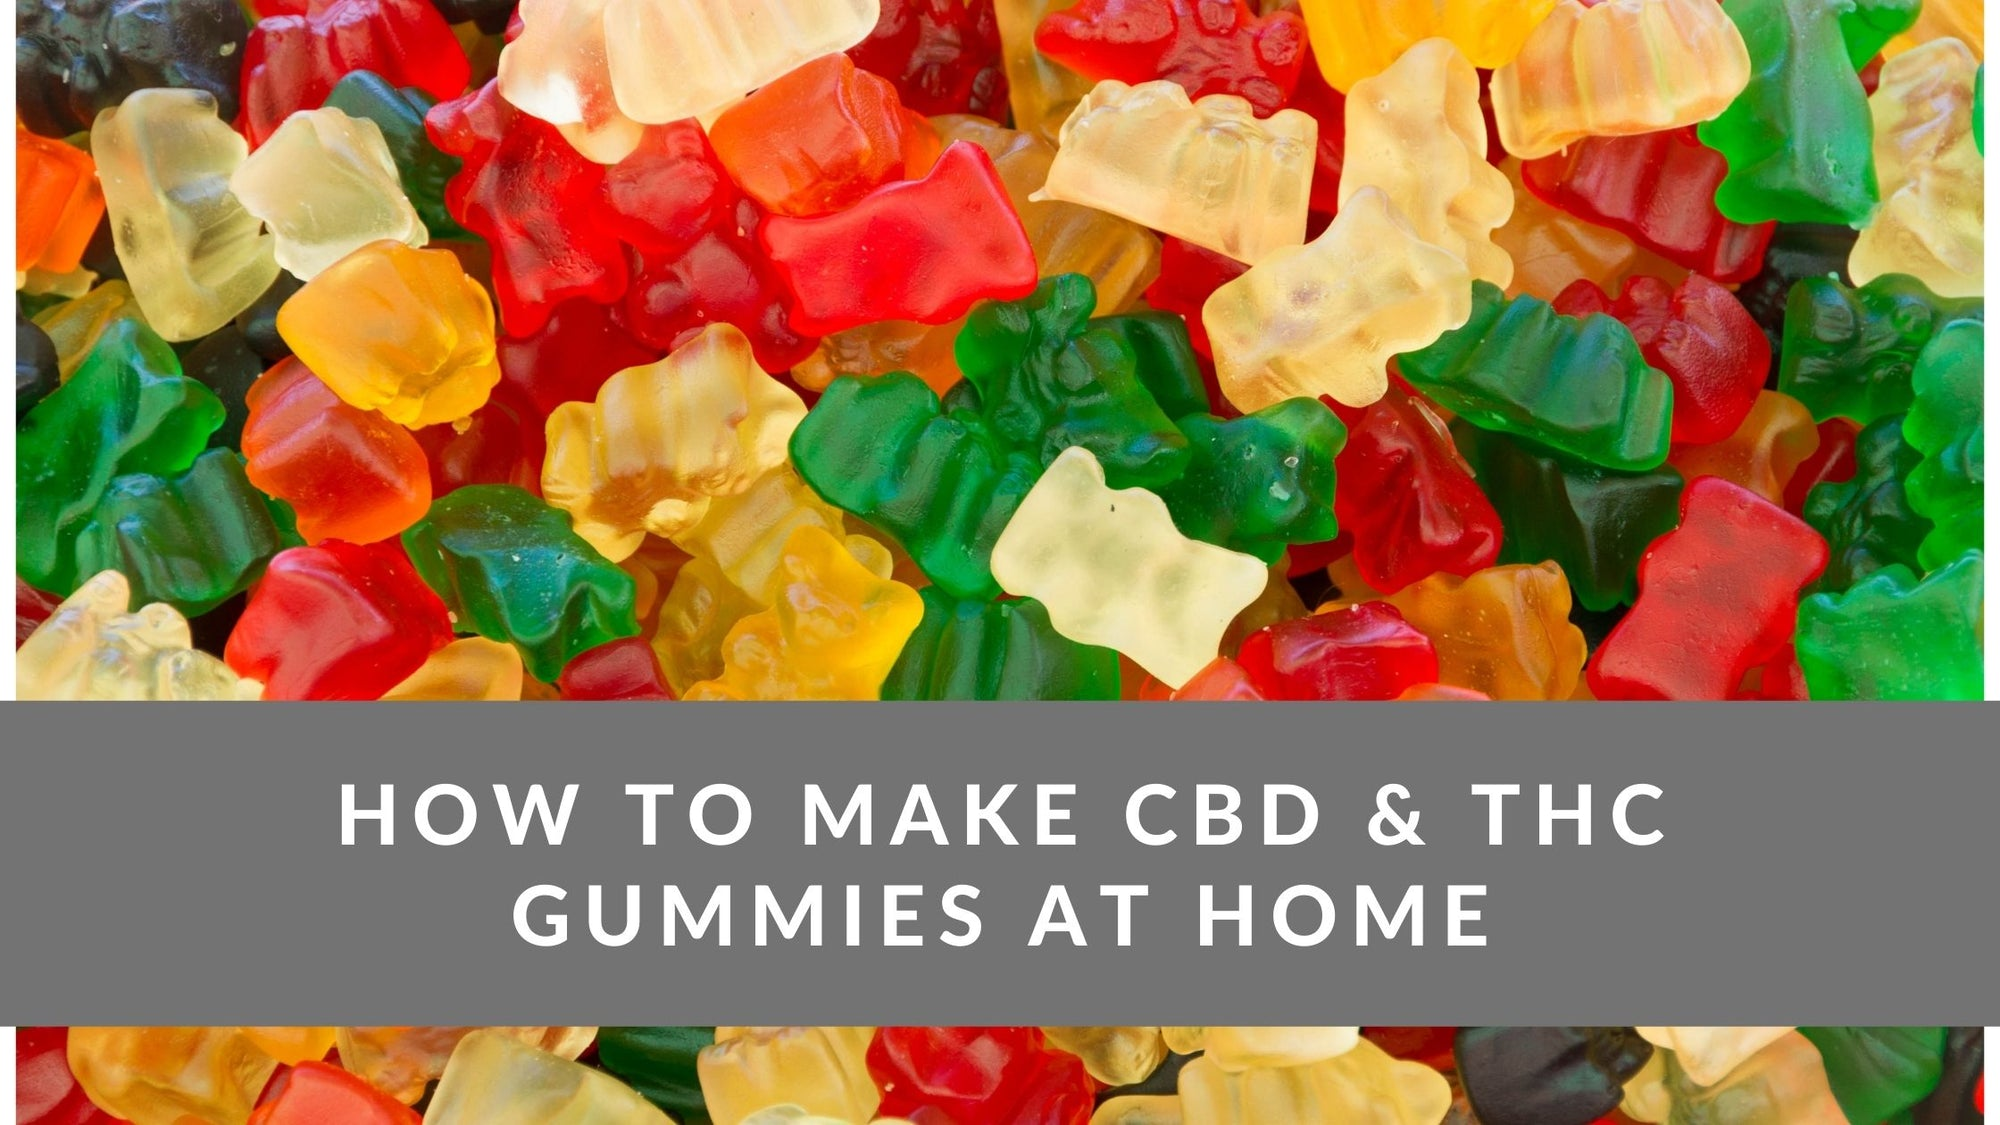 How to Make CBD or THC Gummies at Home